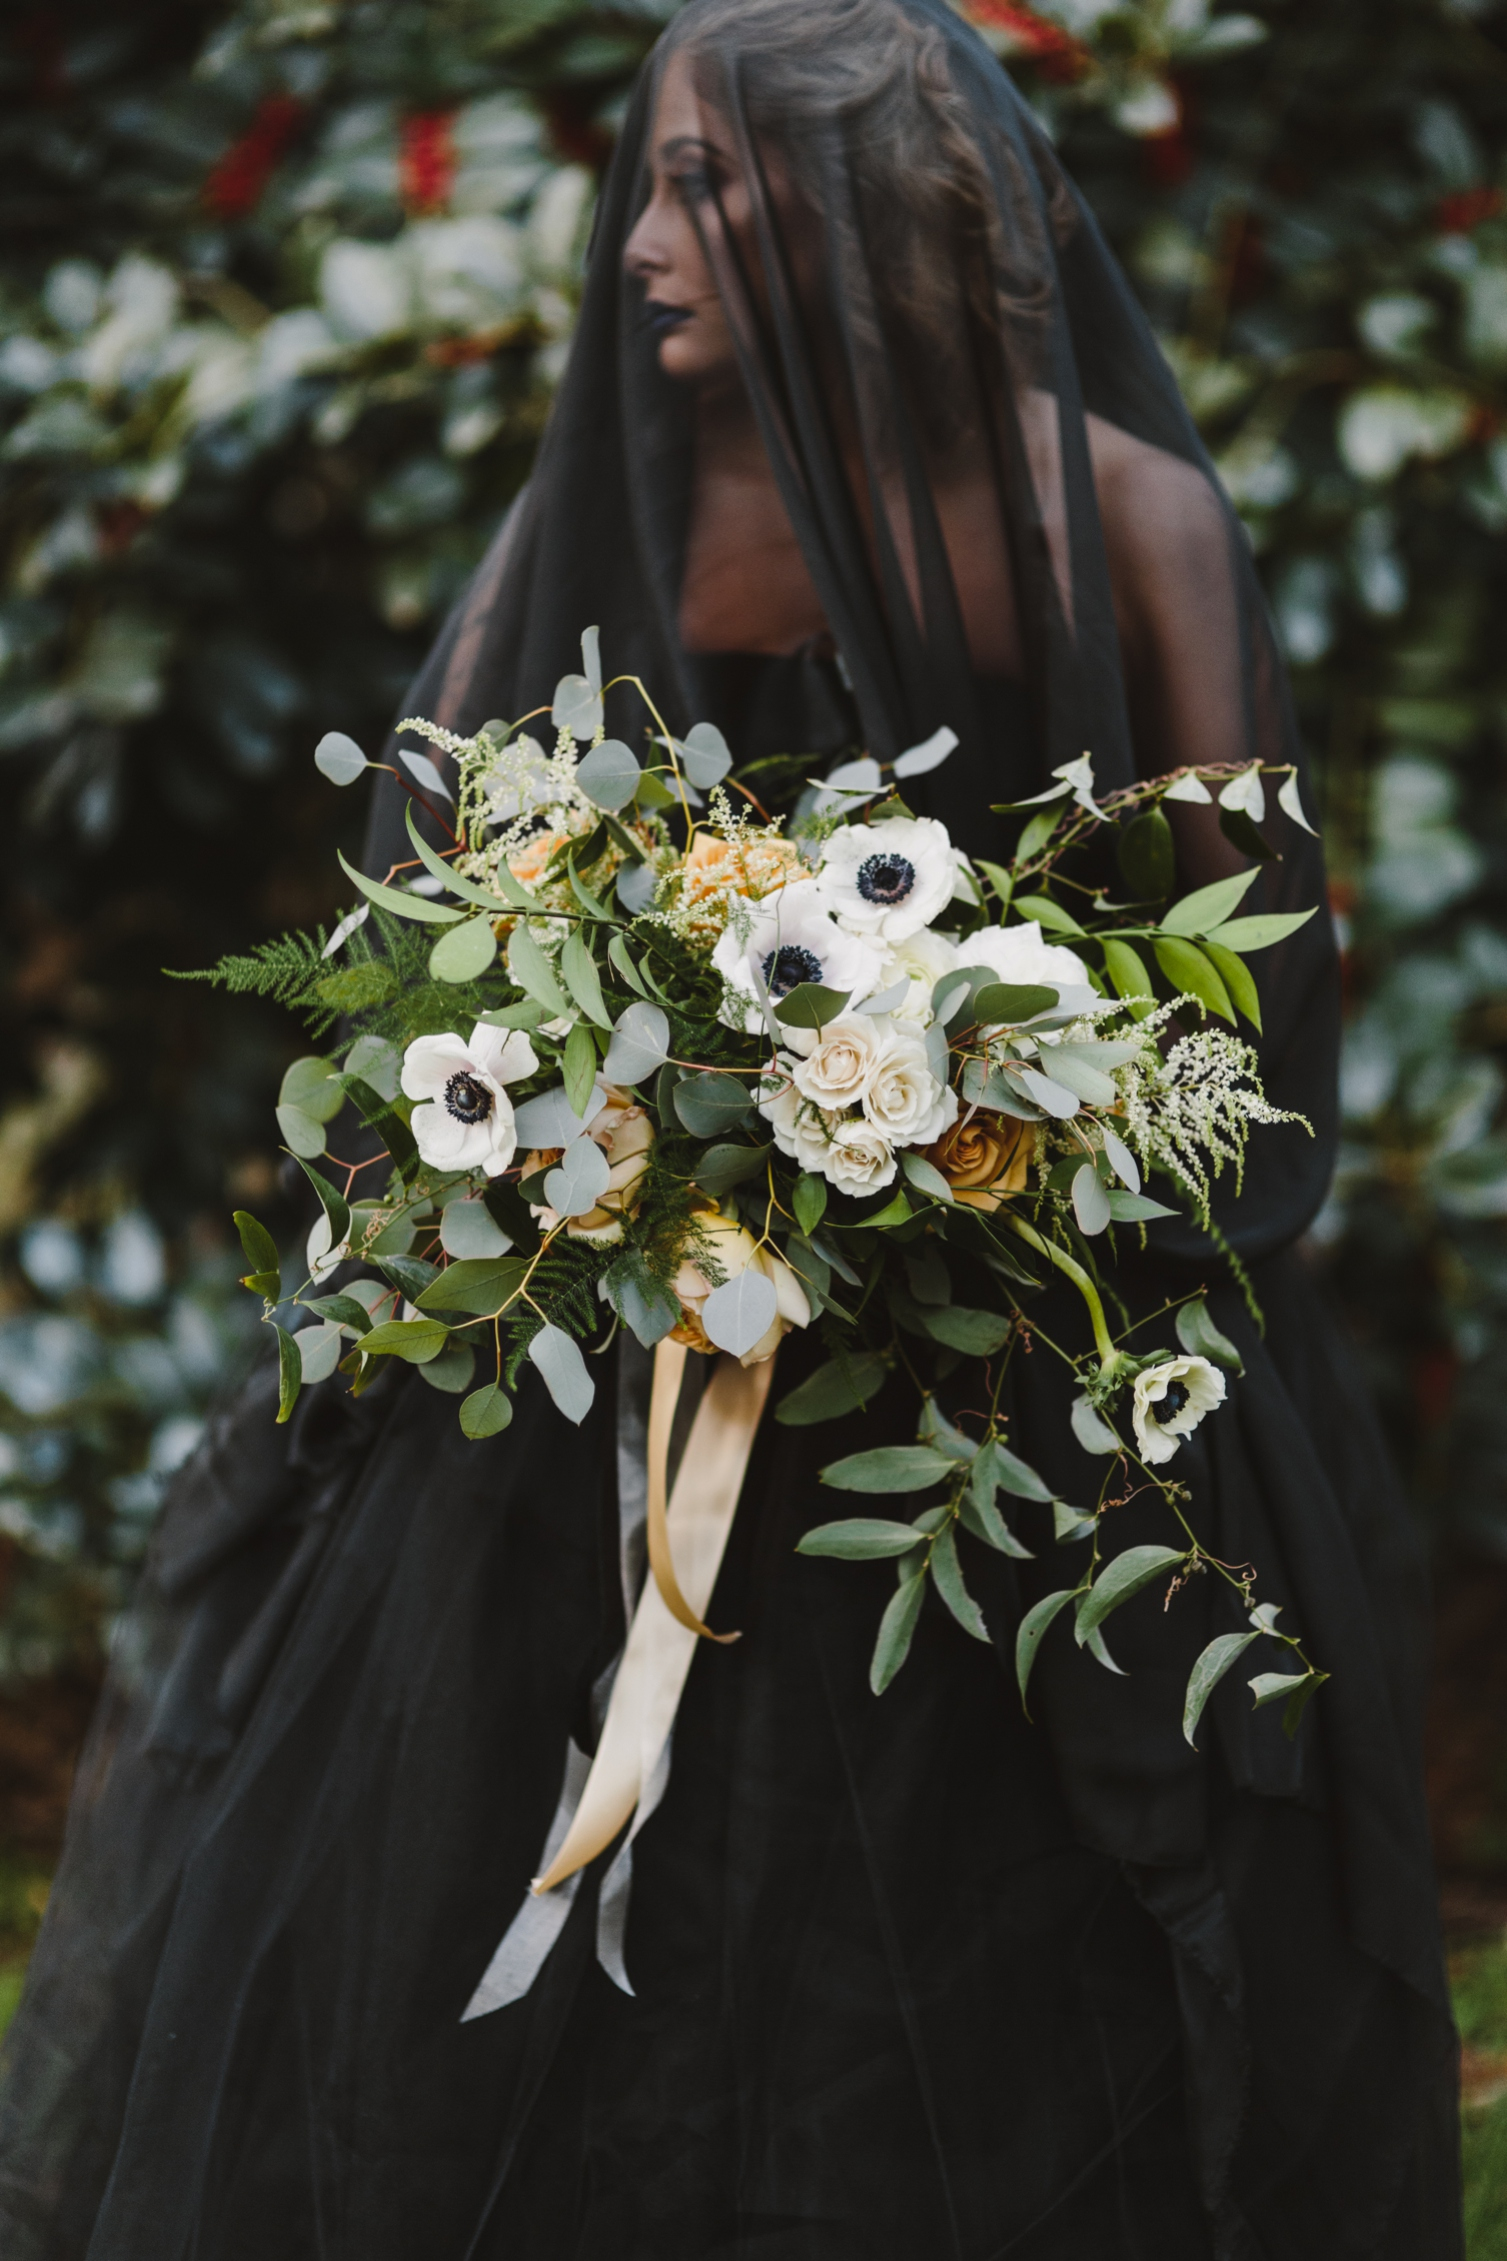 Edgy Elopement | Black Wedding Dress | Annapolis Maryland | Kate Ann Photography